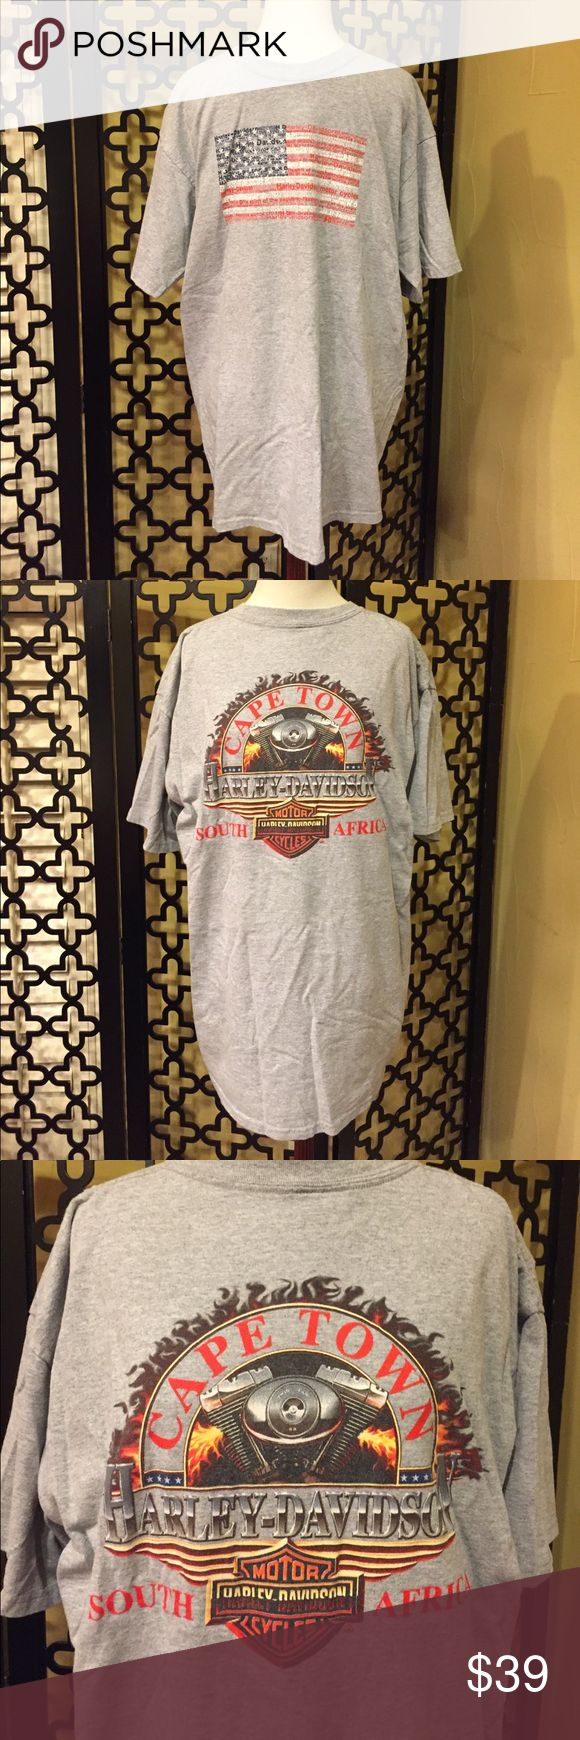 "HARLEY DAVIDSON CAPE TOWN S. AFRICA GRAY SHIRT EUC!                                                                                         No flaws!                                                                                  Front has American flag with made up of the ""Harley Davidson"" and the back has printed ""cape town Harley Davidson and South Africa"".                                                                                            Measurements: 30in long, 40in chest and…"